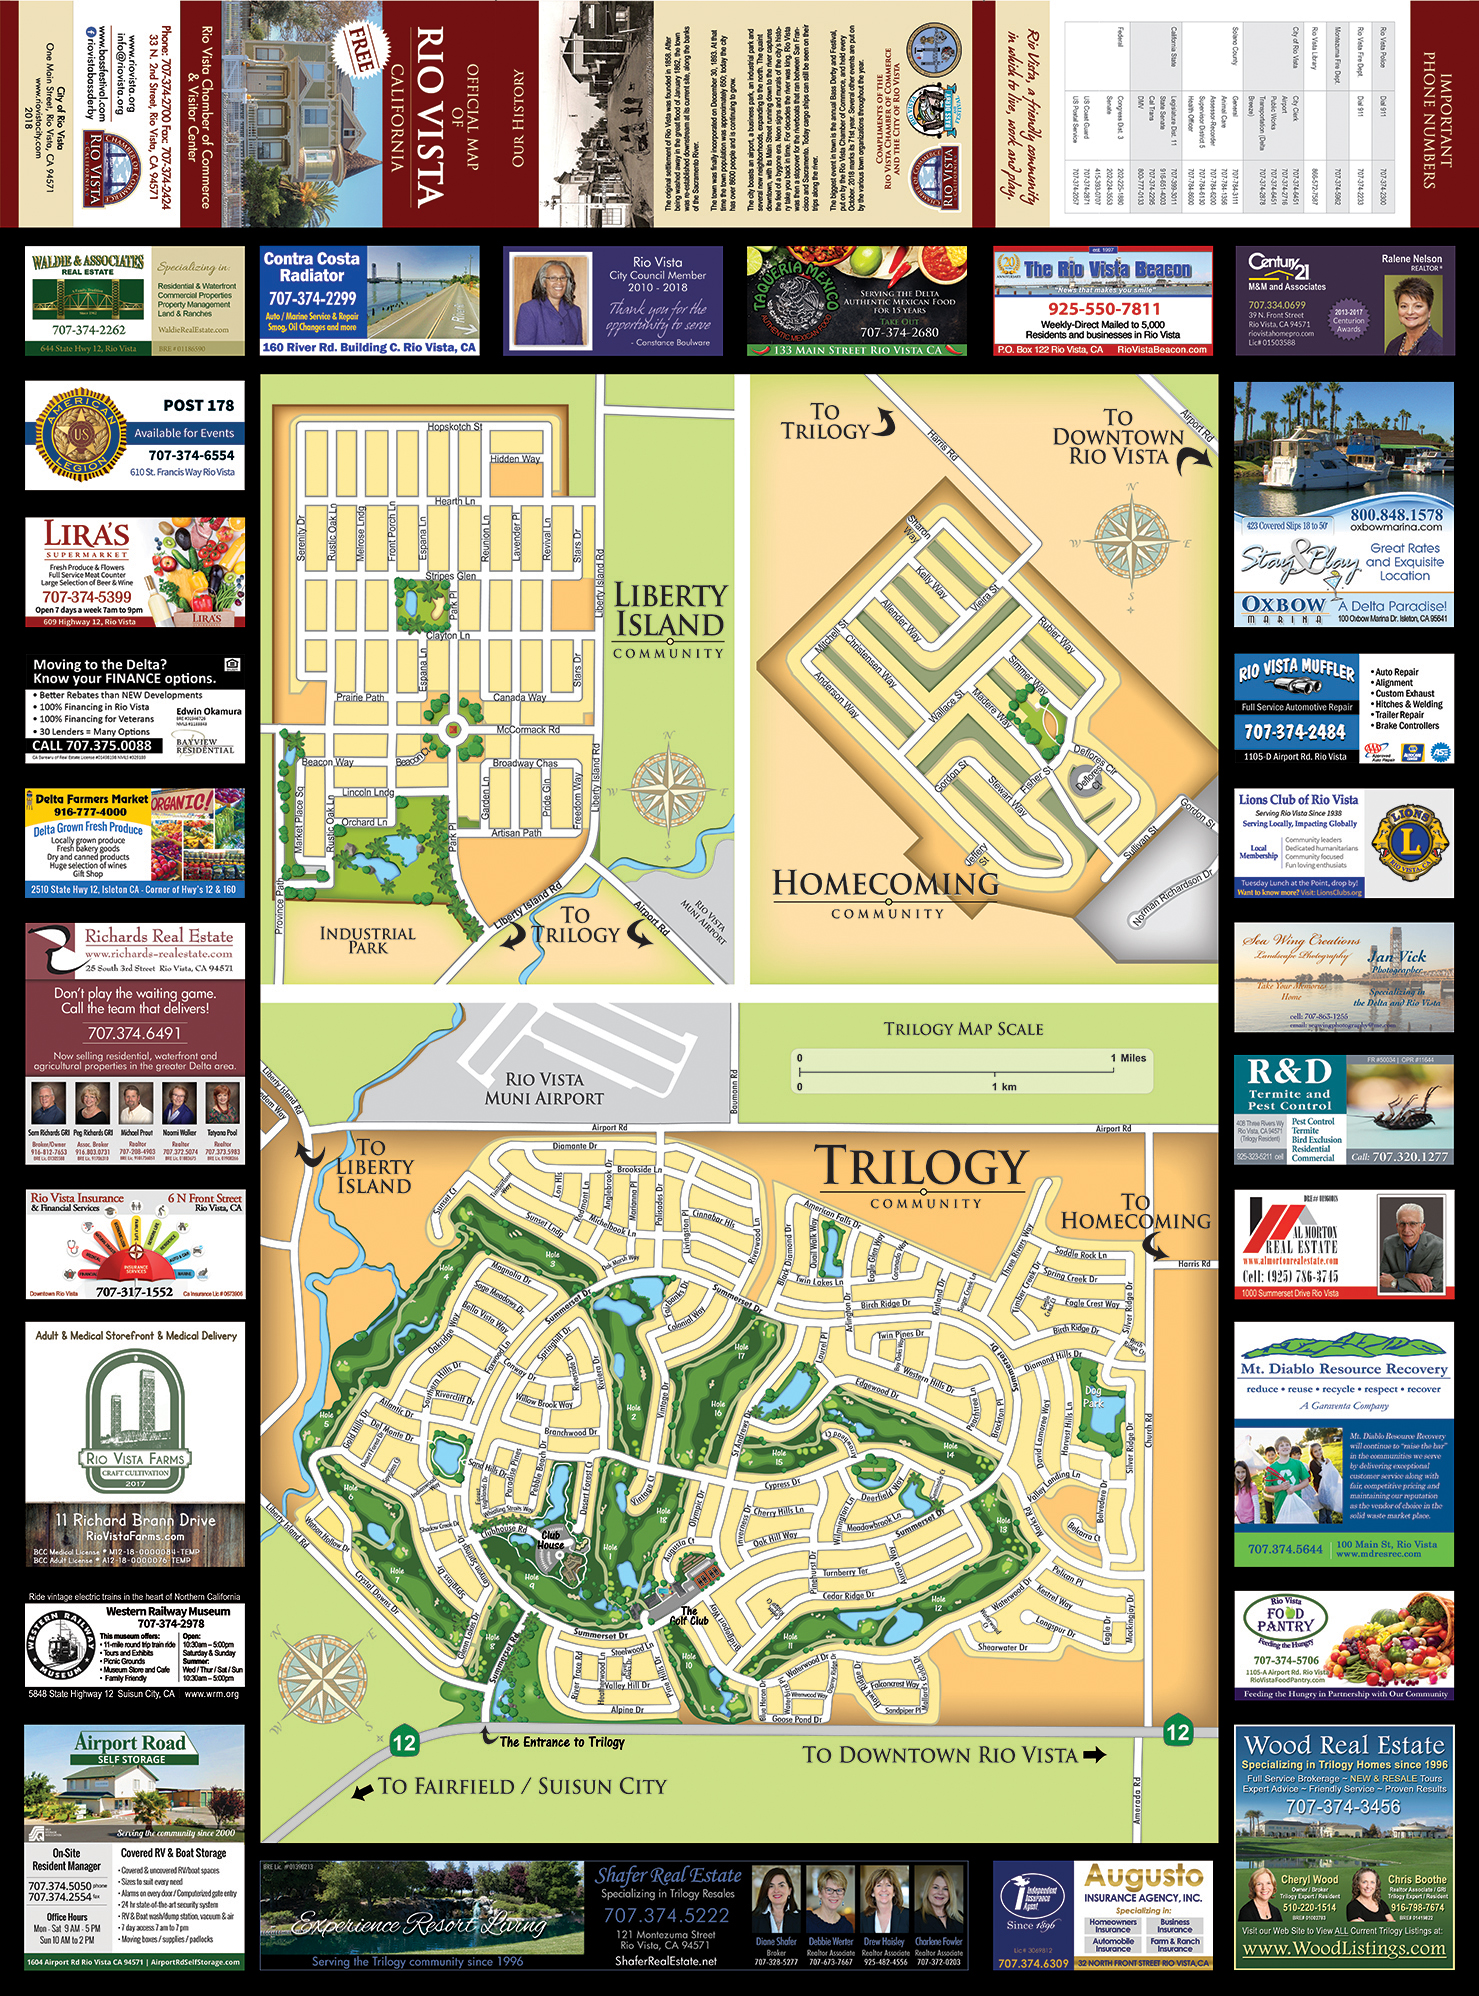 Rio-Vista-Chamber-City-Map-side-2.jpg